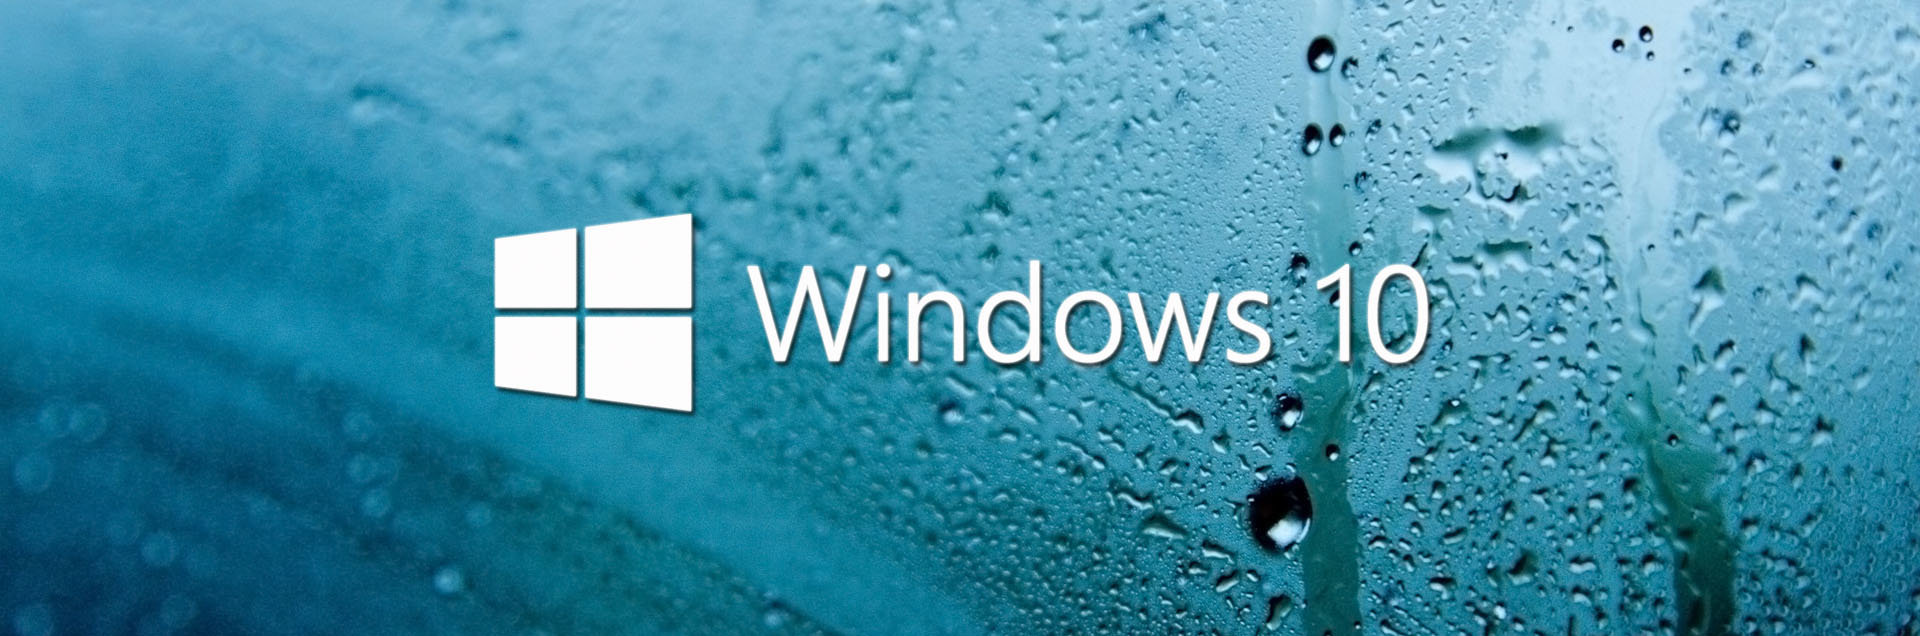 Windows-10-banner-logo-nodevs-02